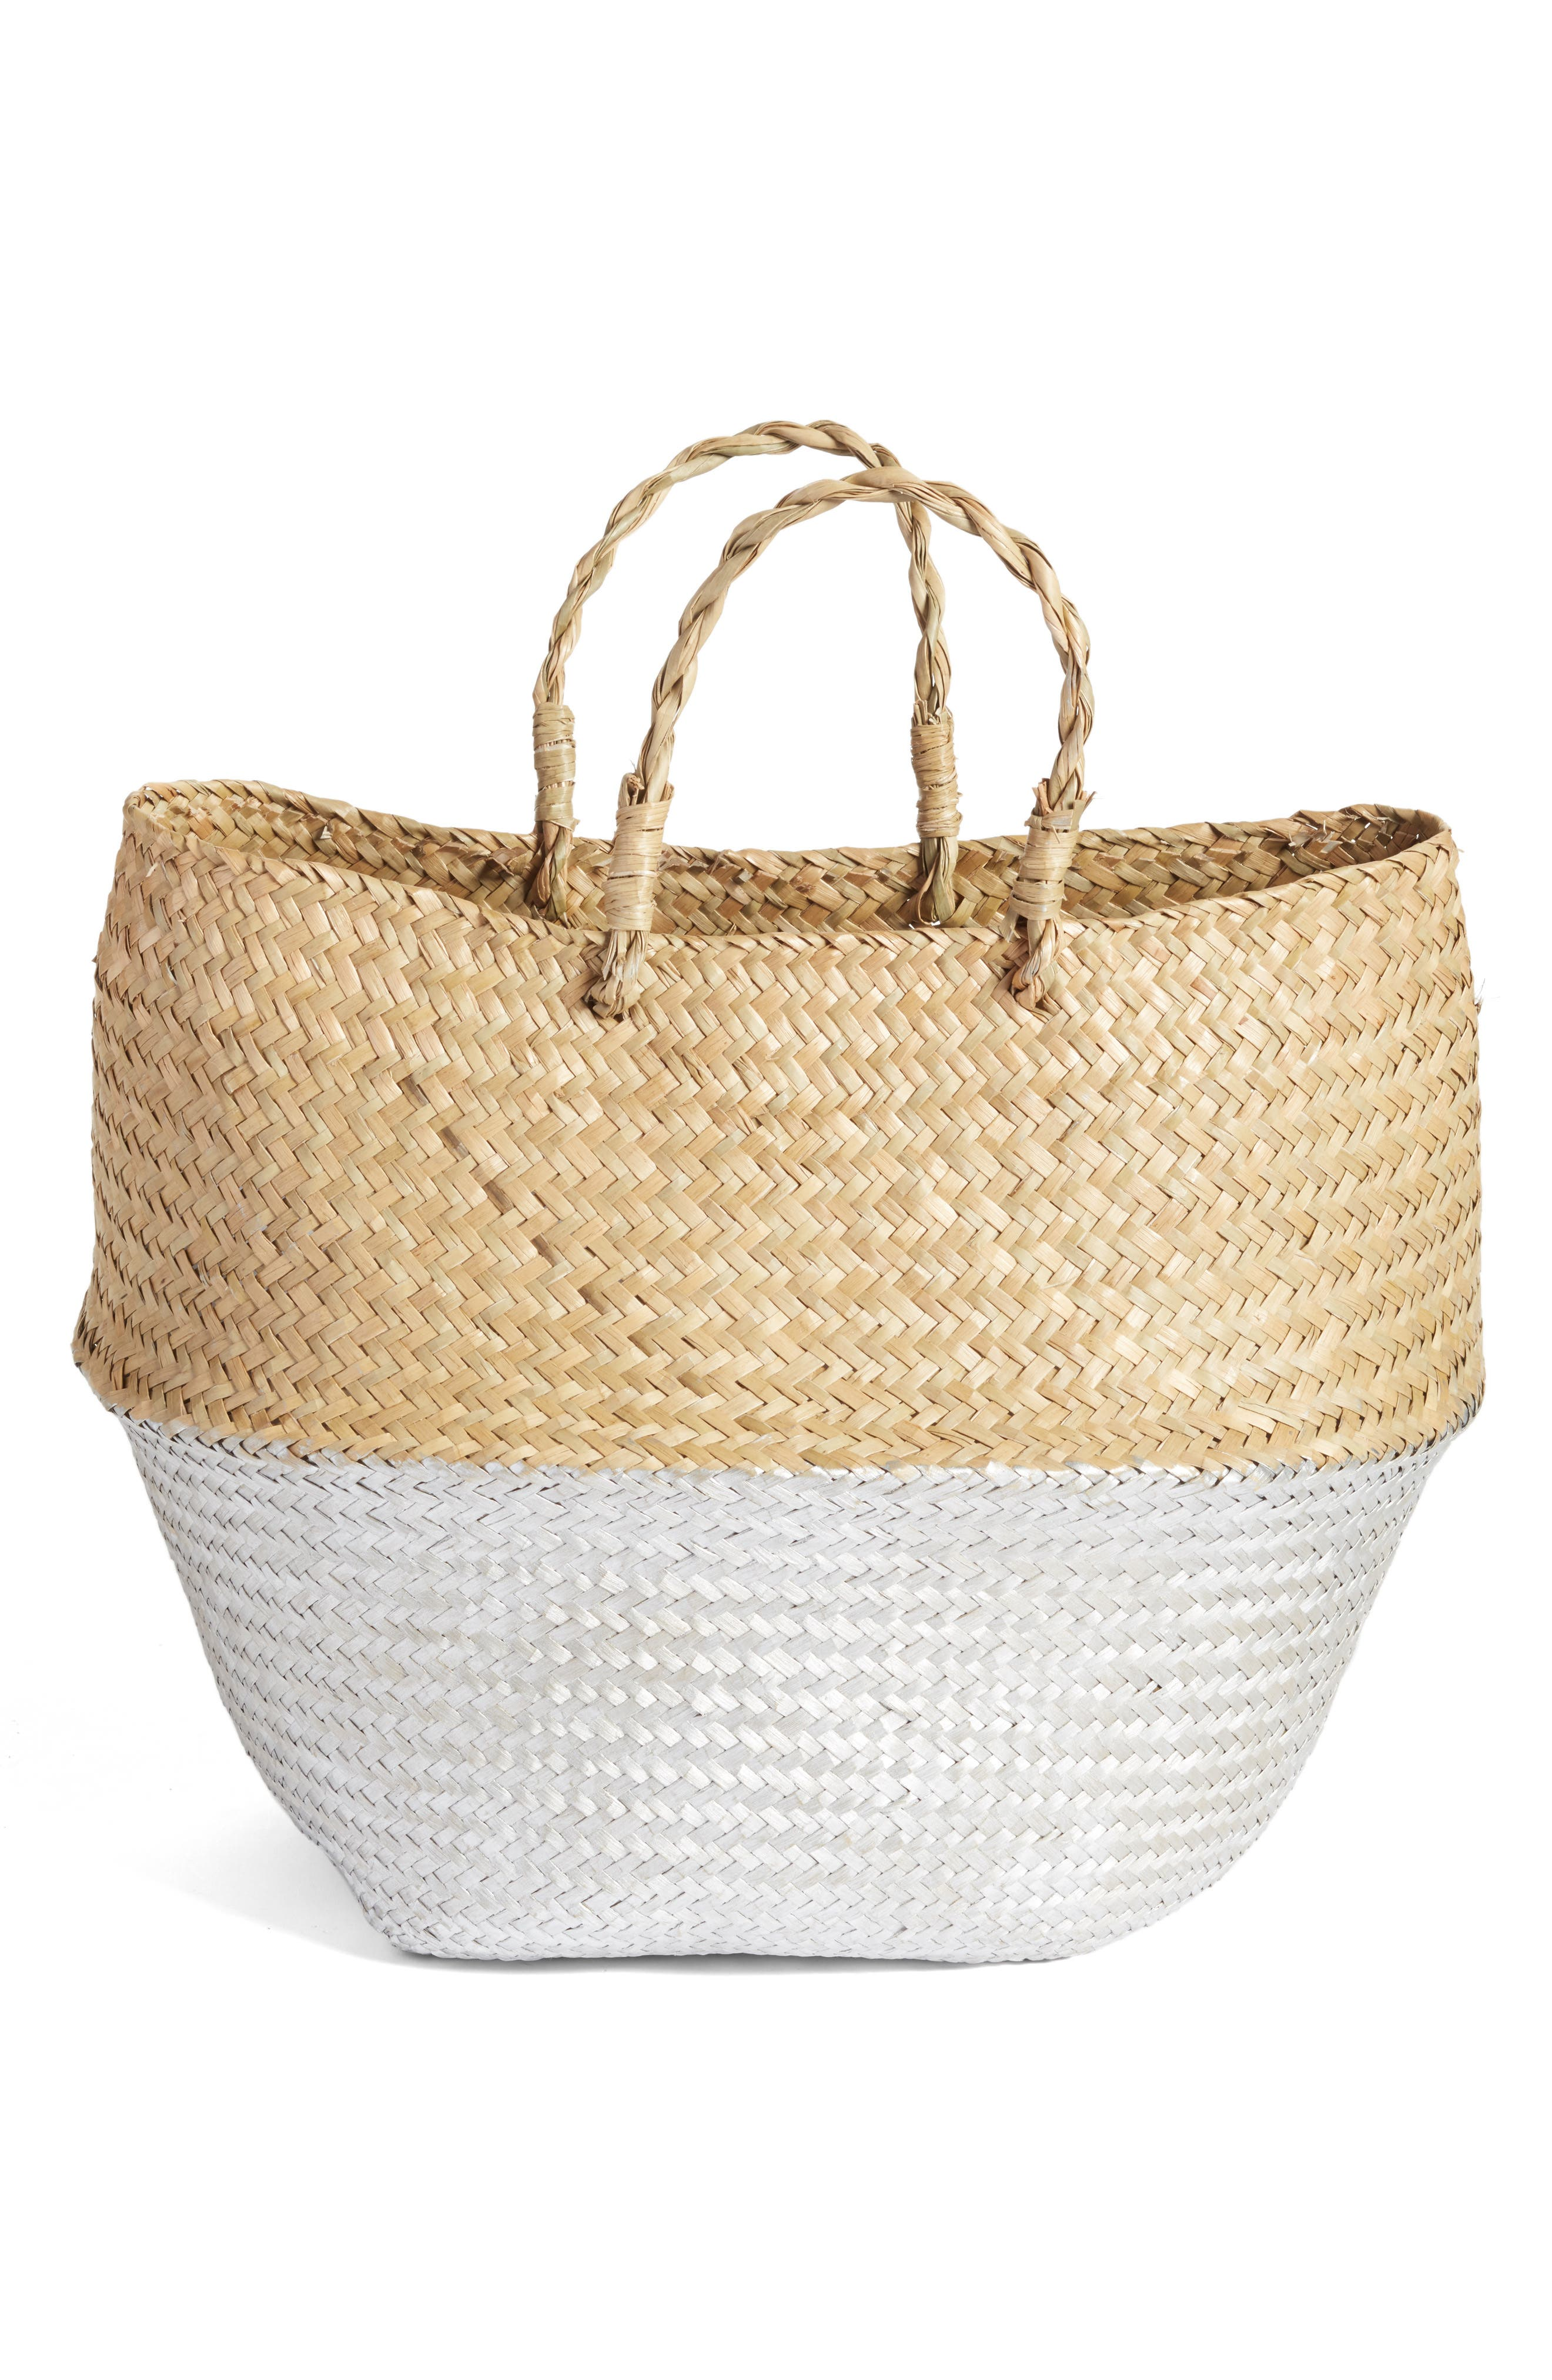 Two-Tone Metallic Straw Basket,                         Main,                         color, 040